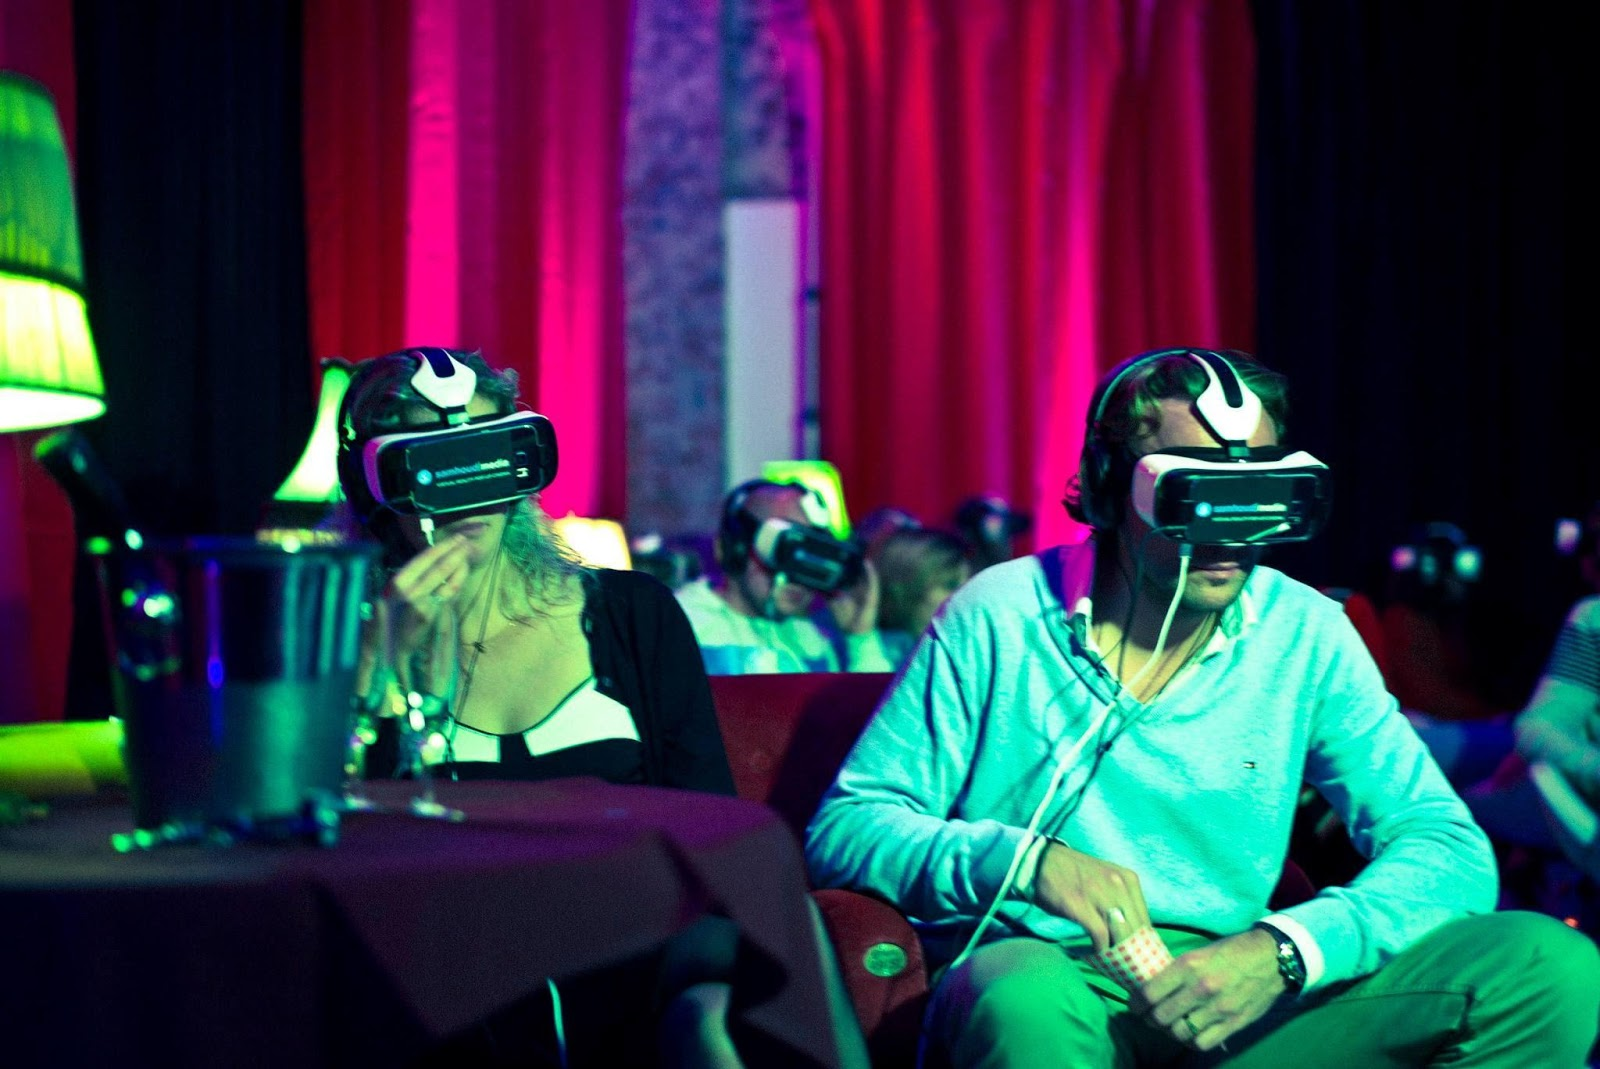 virtual reality movie theaters are getting popular